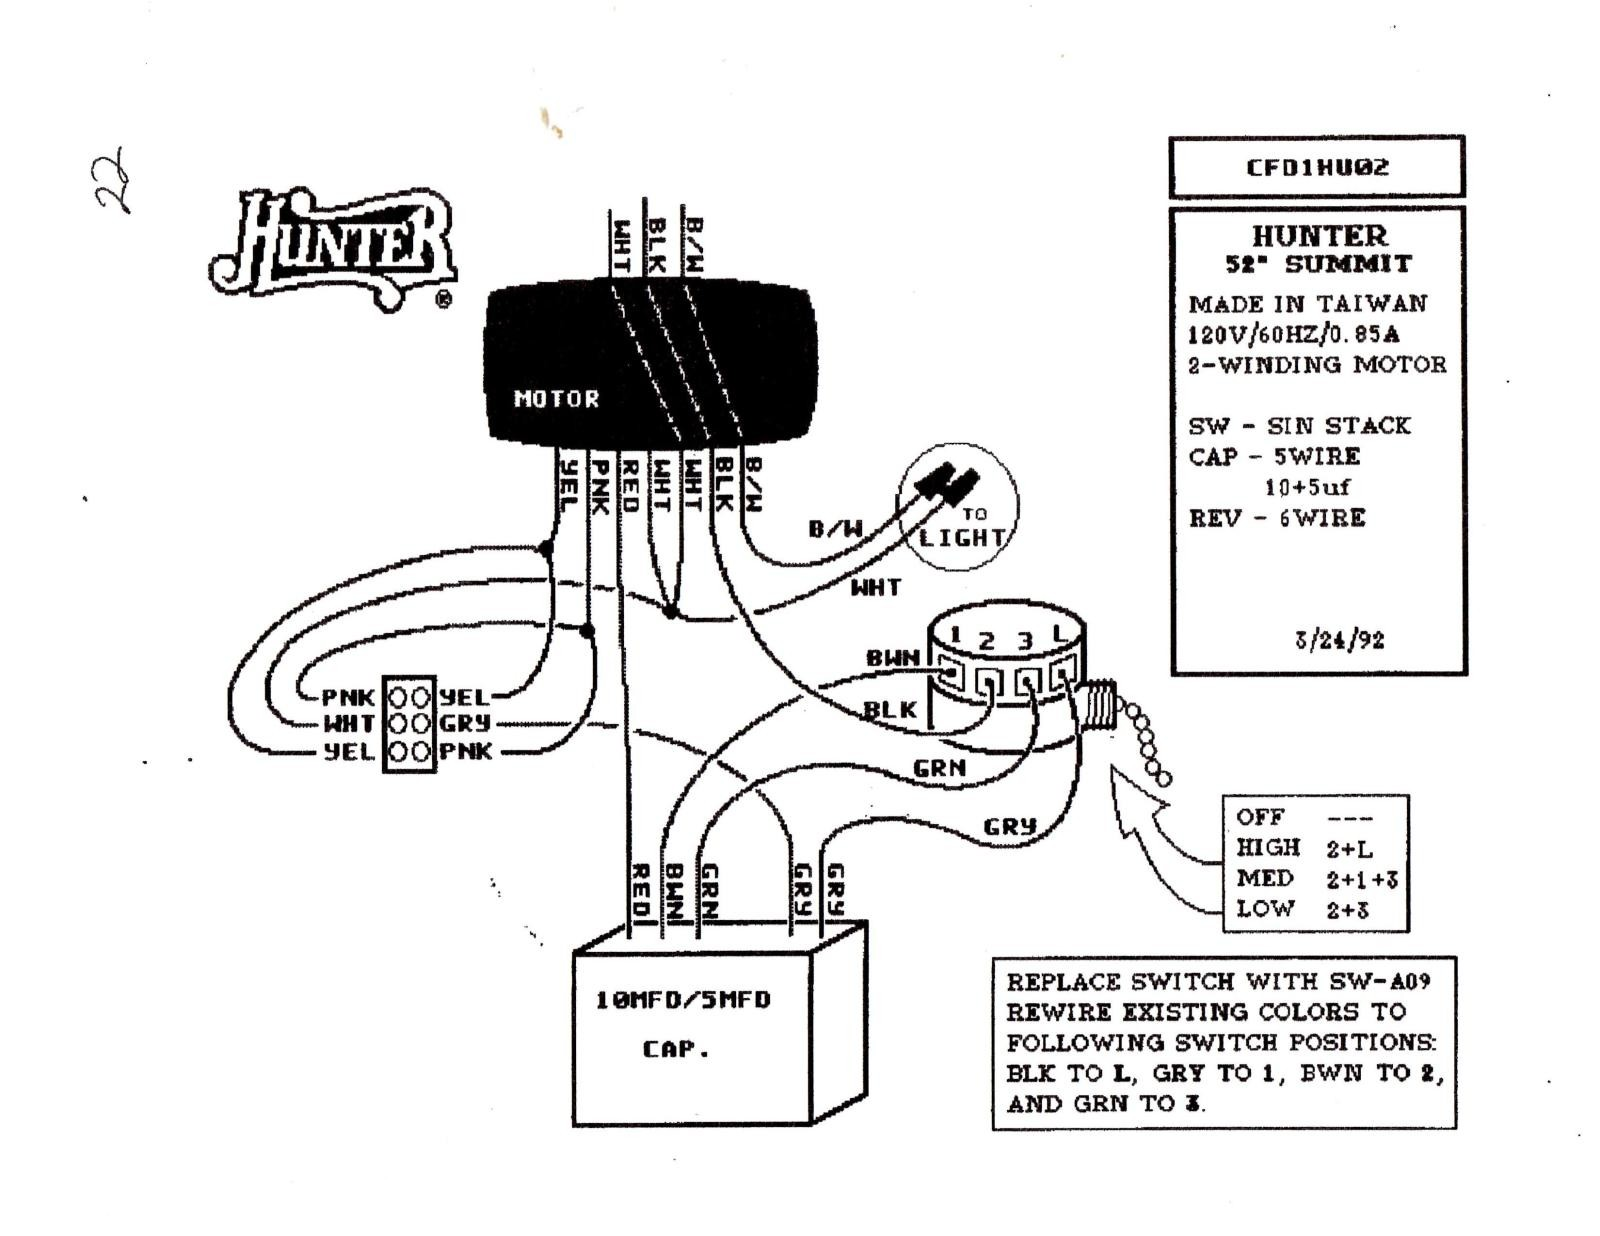 Hunter Fan Switch Wiring Diagram Hunter Ceiling Fan Switch Wiring Diagram Http Line Pliance Fine Of Hunter Fan Switch Wiring Diagram